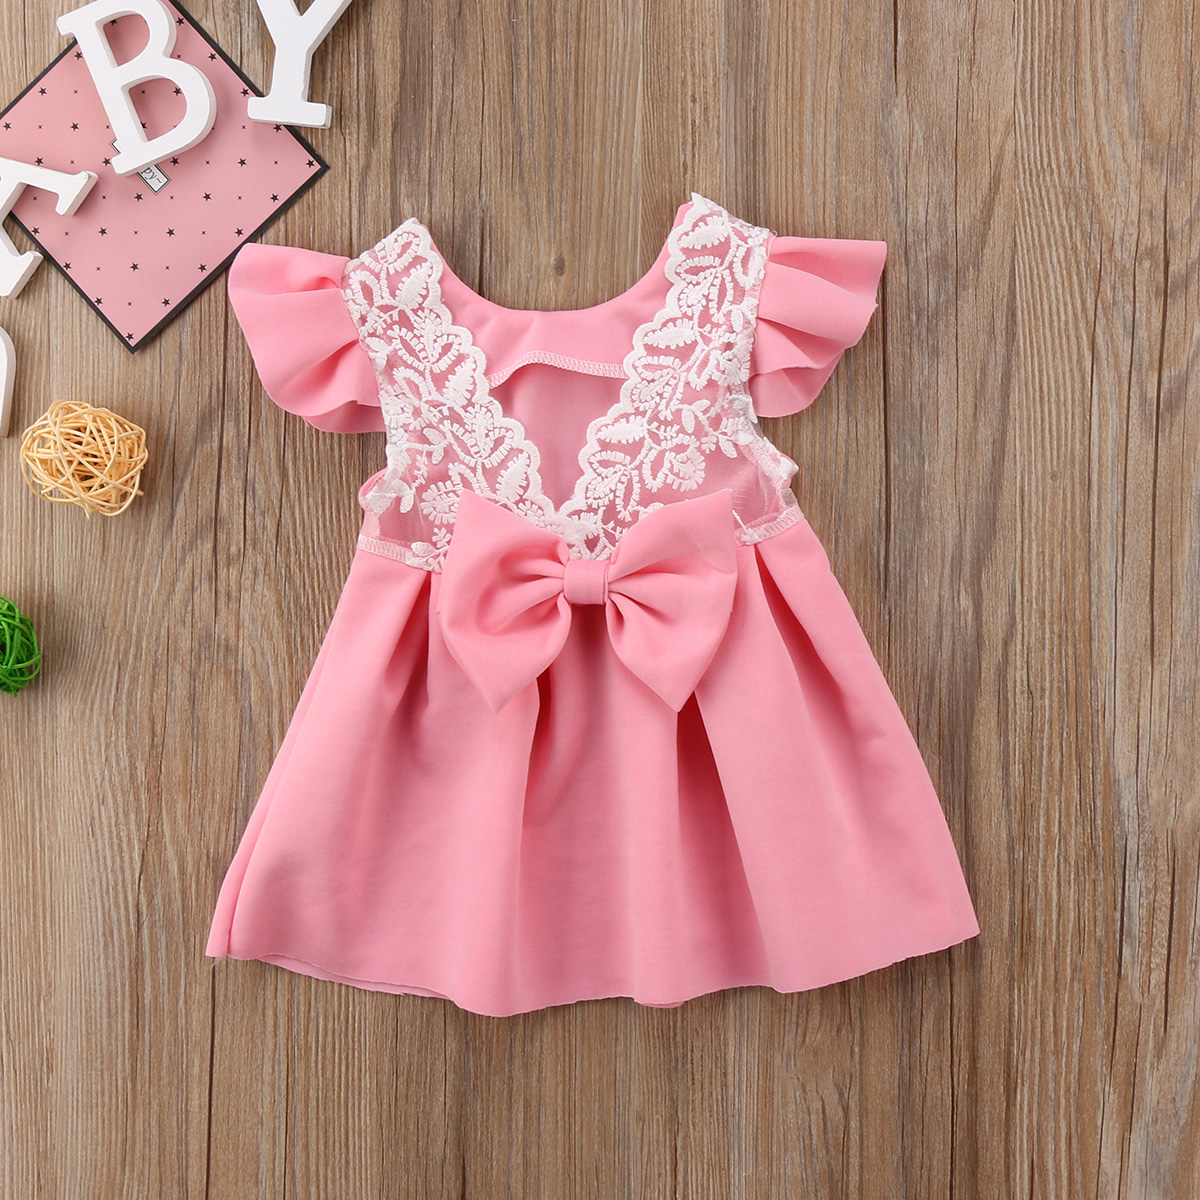 Pudcoco Baby Girls Dress Toddler Girls Backless Lace Bow Princess Dresses Tutu Party Wedding birthday Dress for girls Easter new high quality fashion excellent girl party dress with big lace bow color purple princess dresses for wedding and birthday